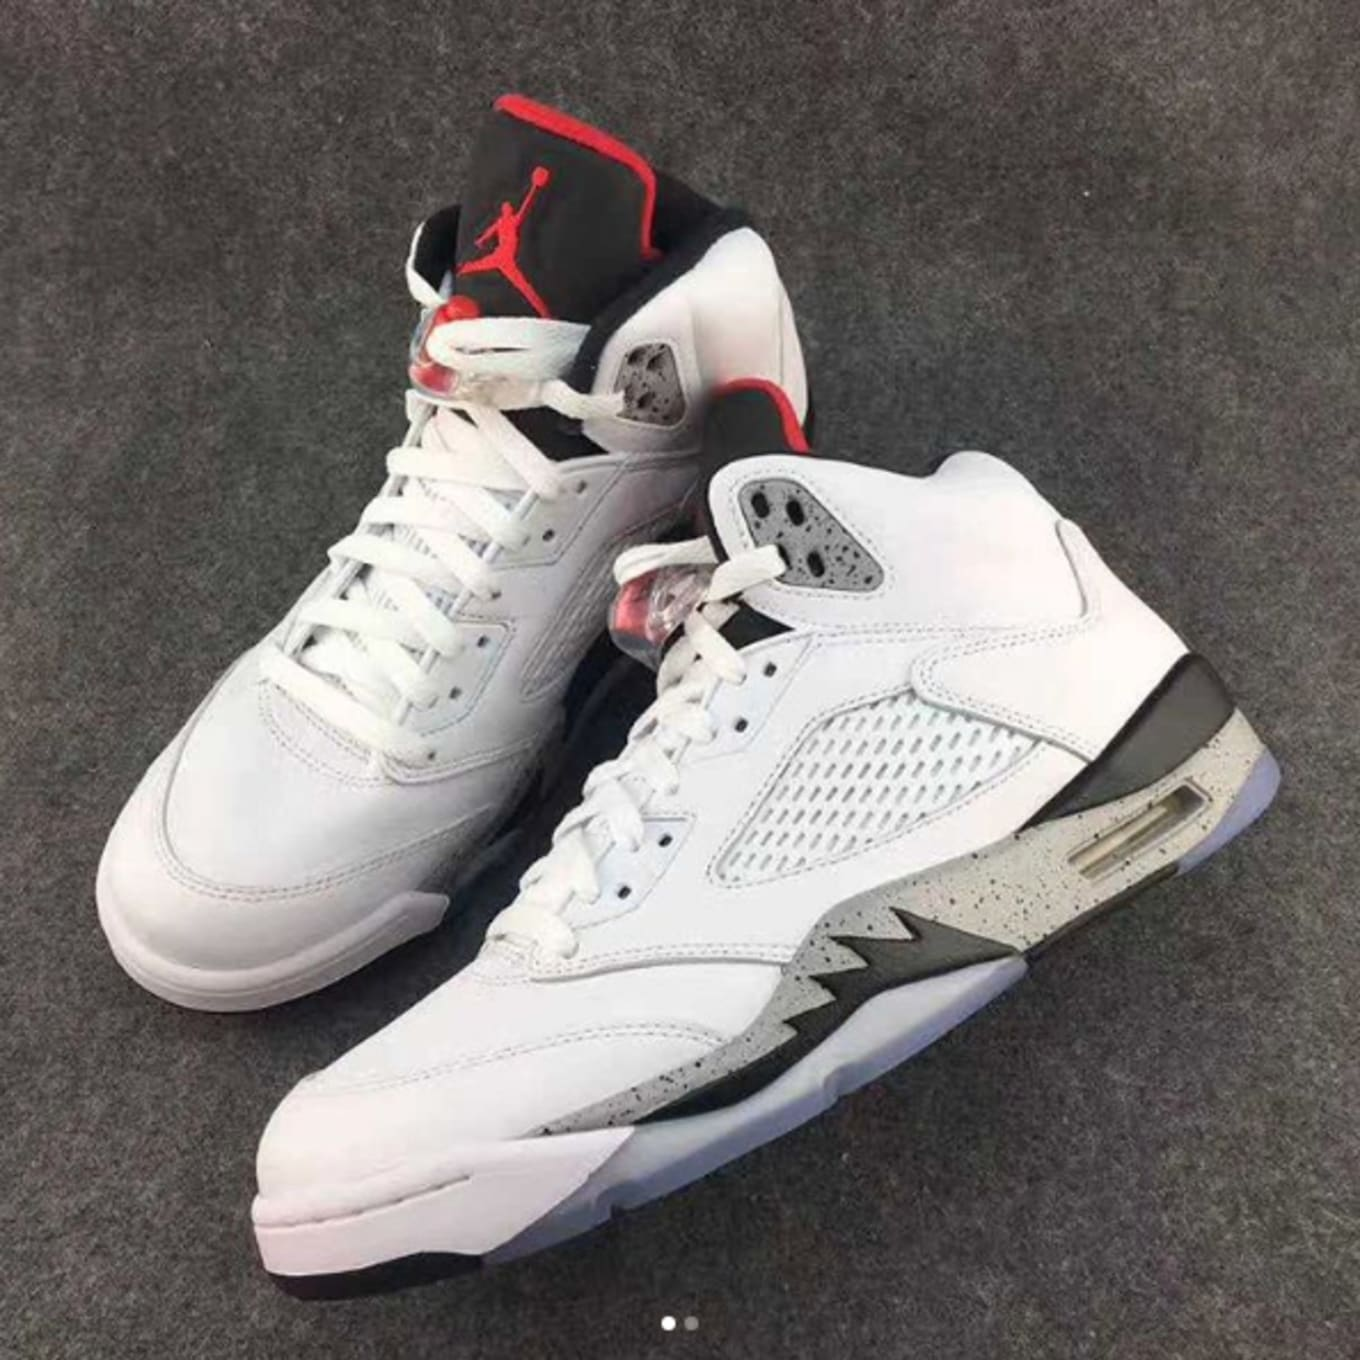 eb2db6035a5a5 First Look at the  White Cement  Air Jordan 5